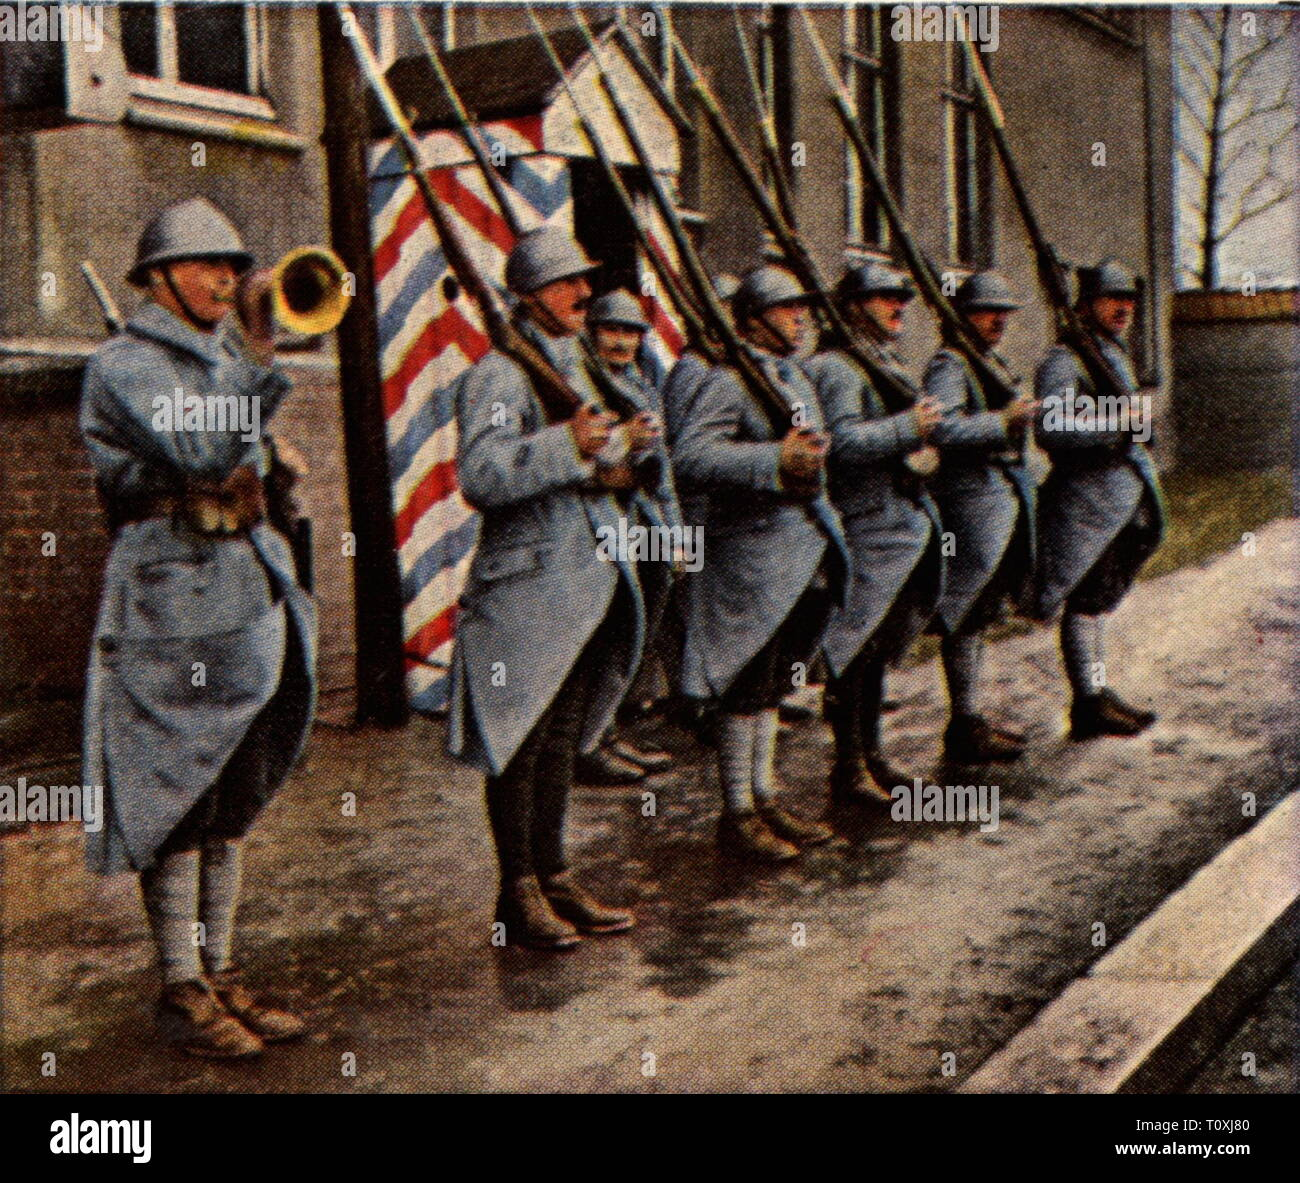 politics, Inter-Allied occupation for safeguarding the plebiscite in Upper Silesia, French guard in Katowice, January 1920, coloured photograph, cigarette card, series 'Die Nachkriegszeit', 1935, Katowice, Poland, Silesia, clause of the treaty of Versailles, Treaty of Versailles, military, Entente, French, soldiers, soldier, people, Prussia, Germany, German Reich, Weimar Republic, 1920s, 20th century, politics, policy, plebiscite, national referendum, coloured, colored, post war period, post-war period, post-war years, post-war era, historic, his, Additional-Rights-Clearance-Info-Not-Available - Stock Image